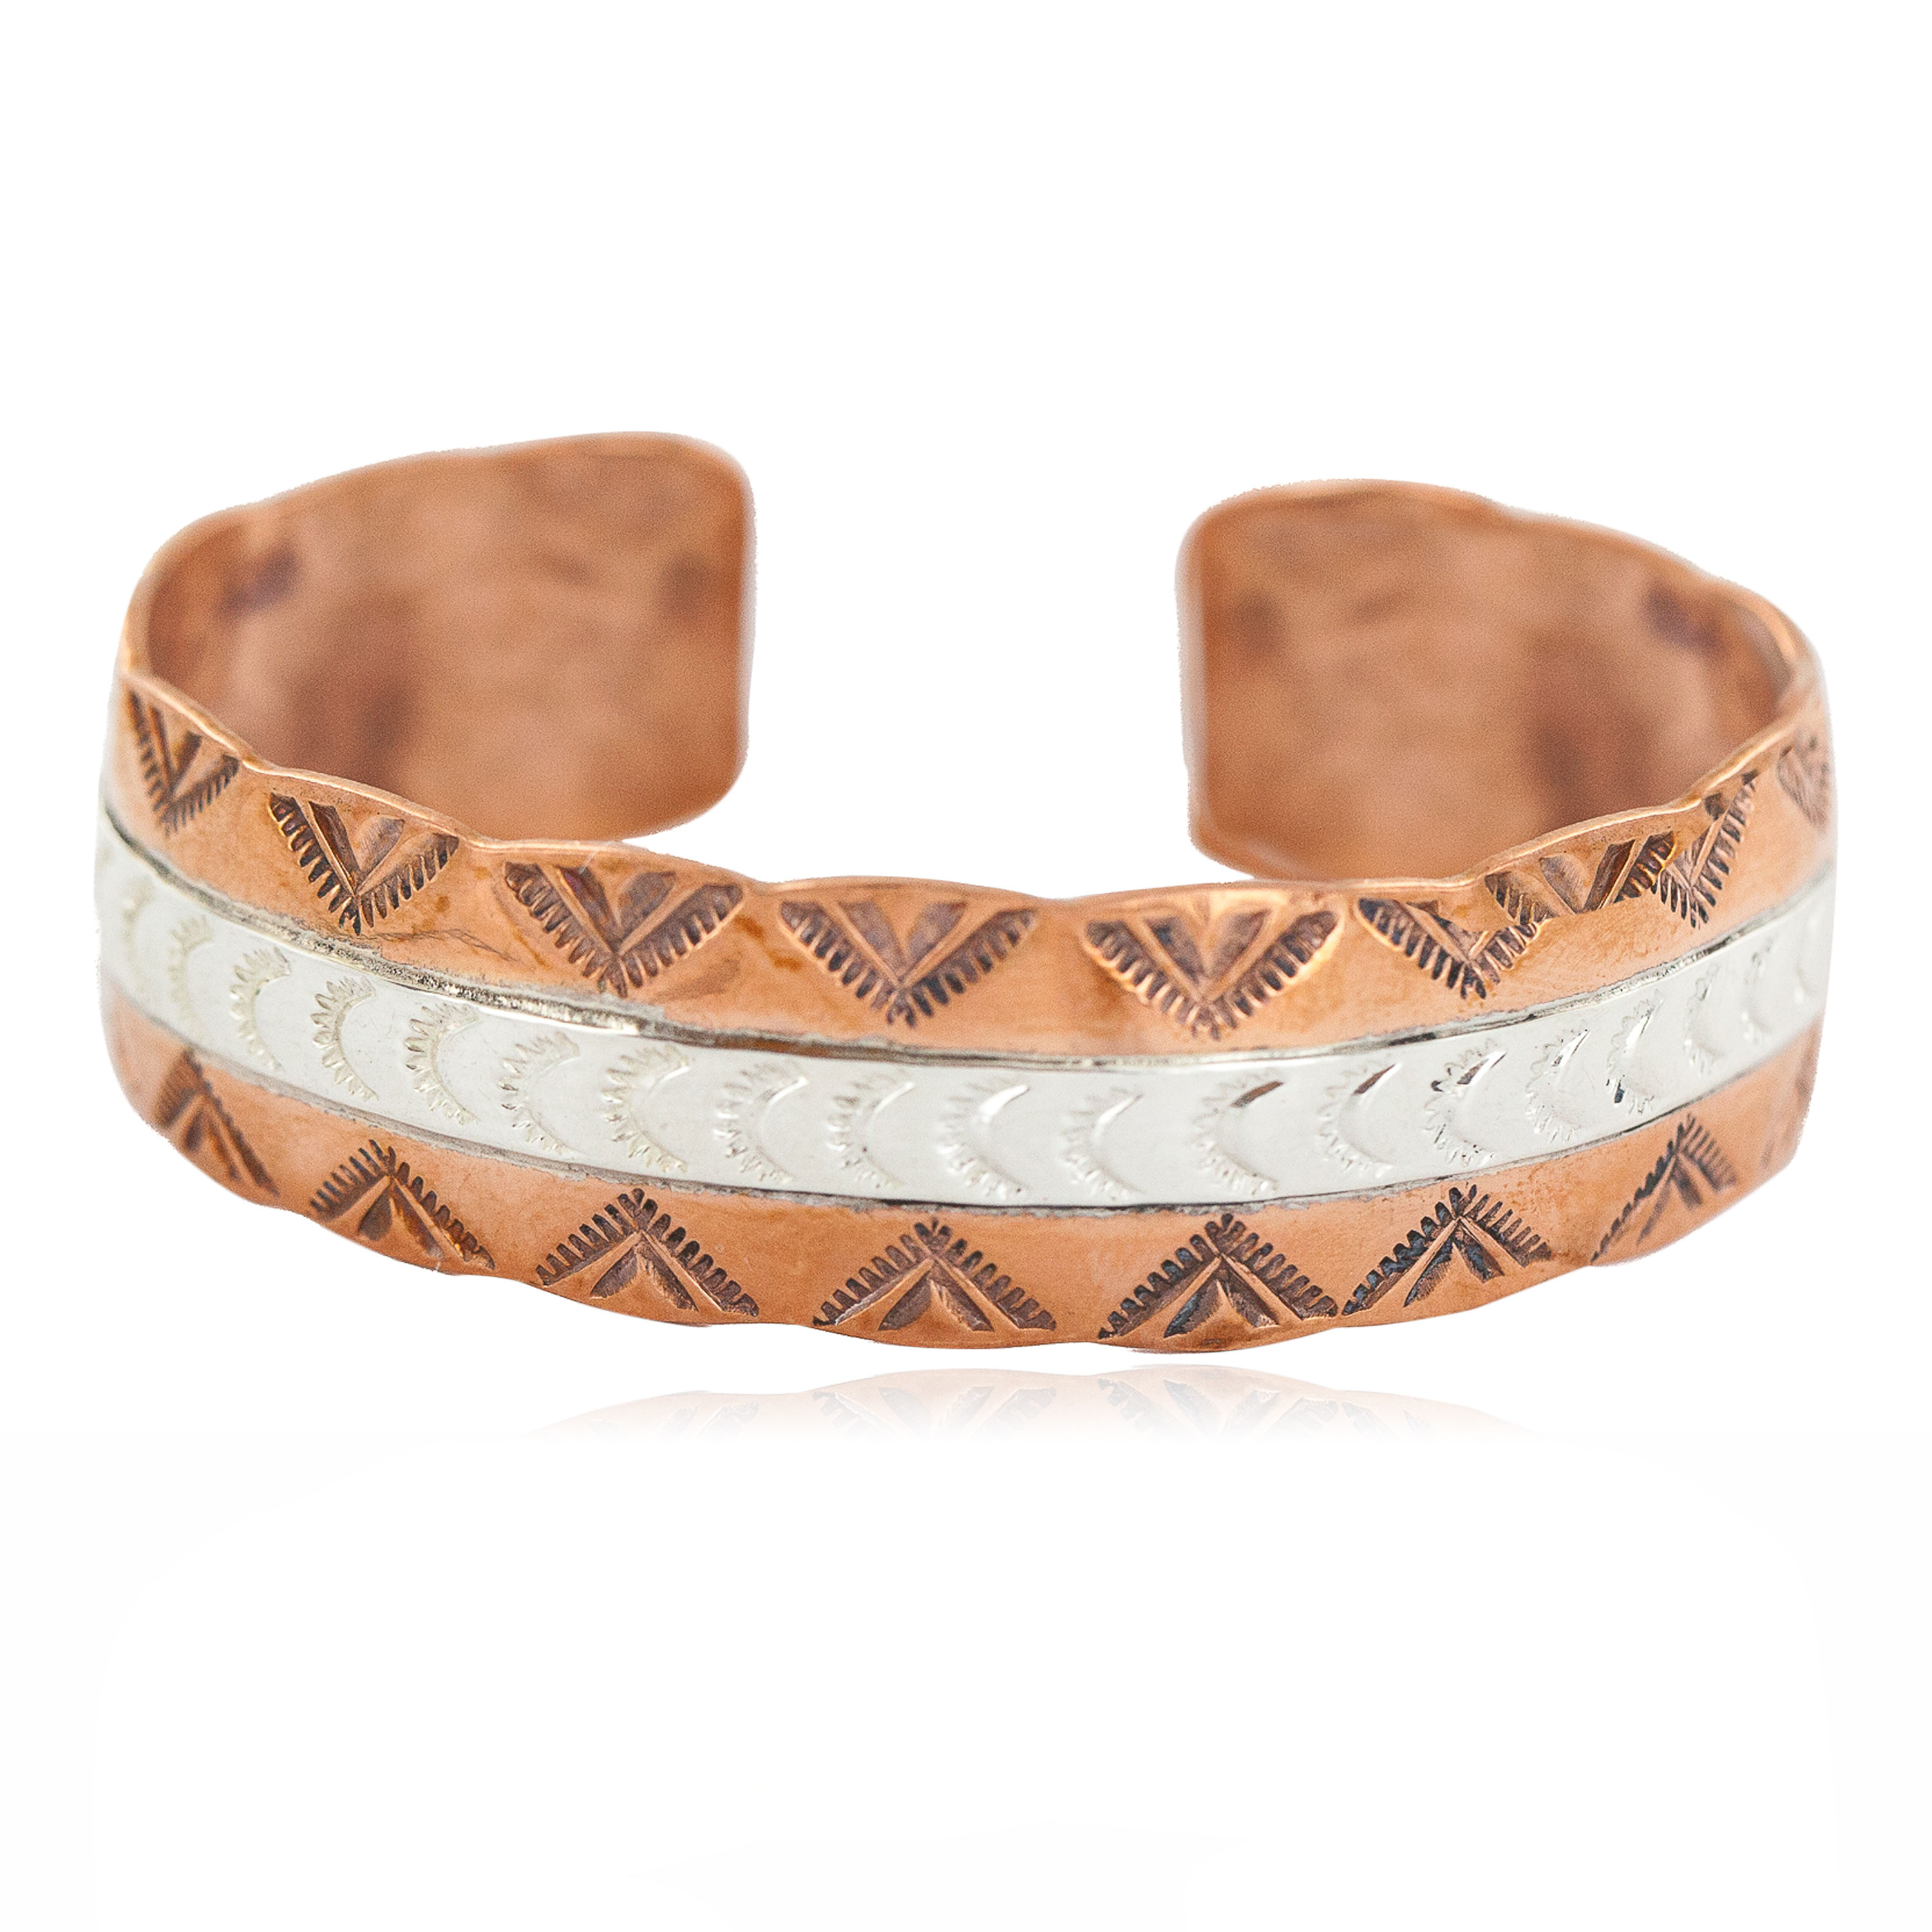 Certified Authentic .925 Sterling Silver Mountain Feather Navajo Handmade Native American Pure Copper Bracelet 24497-3 All Products NB160423214142 24497-3 (by LomaSiiva)